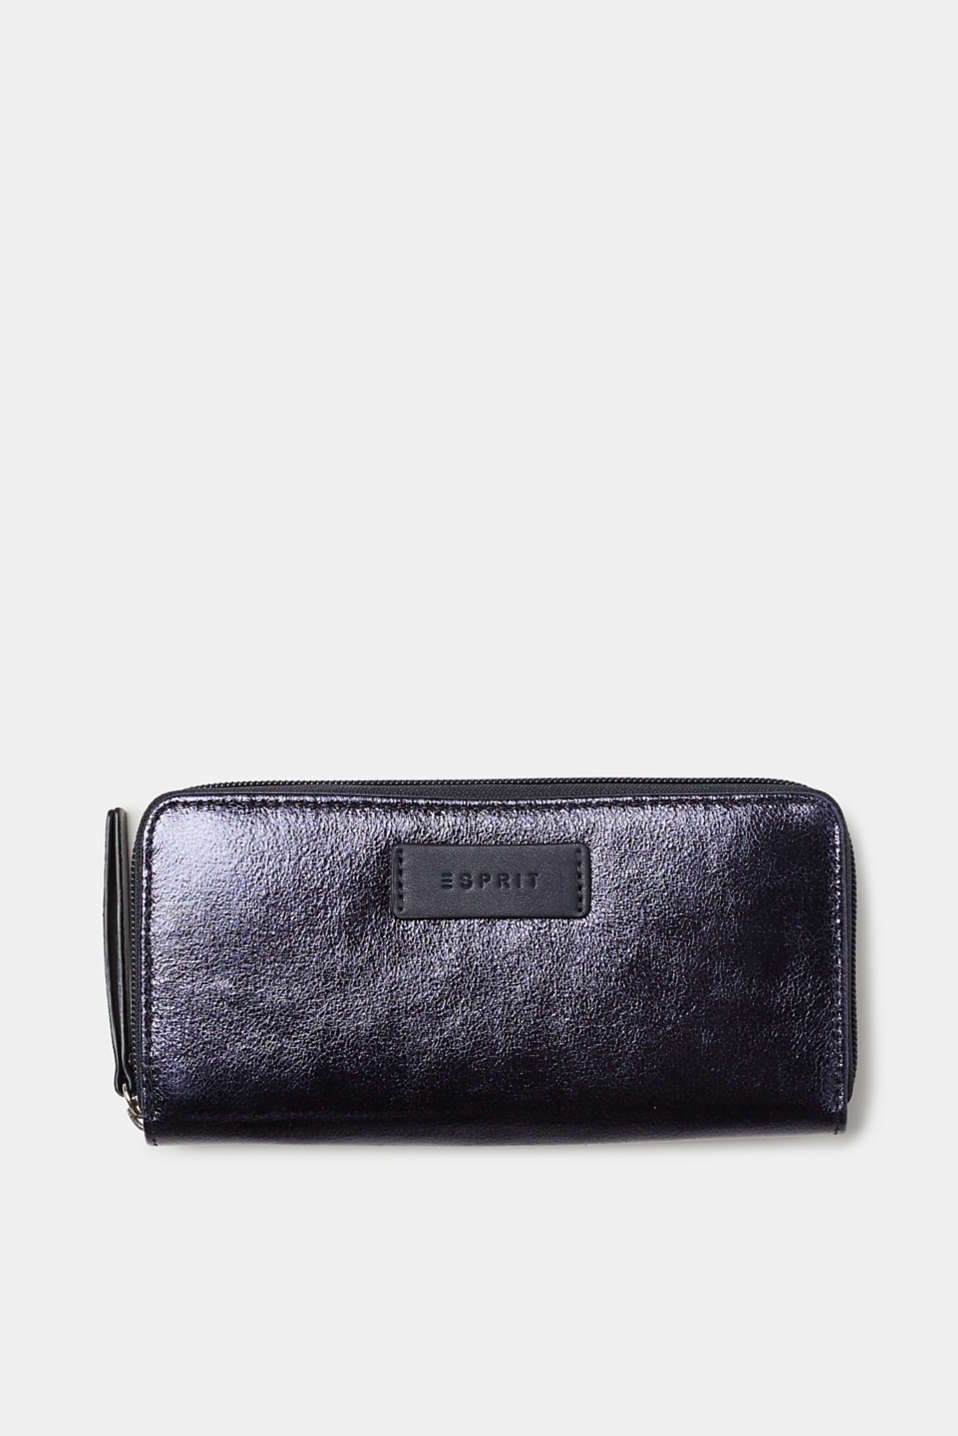 Esprit - Wallet with a zip, in a trendy metallic look